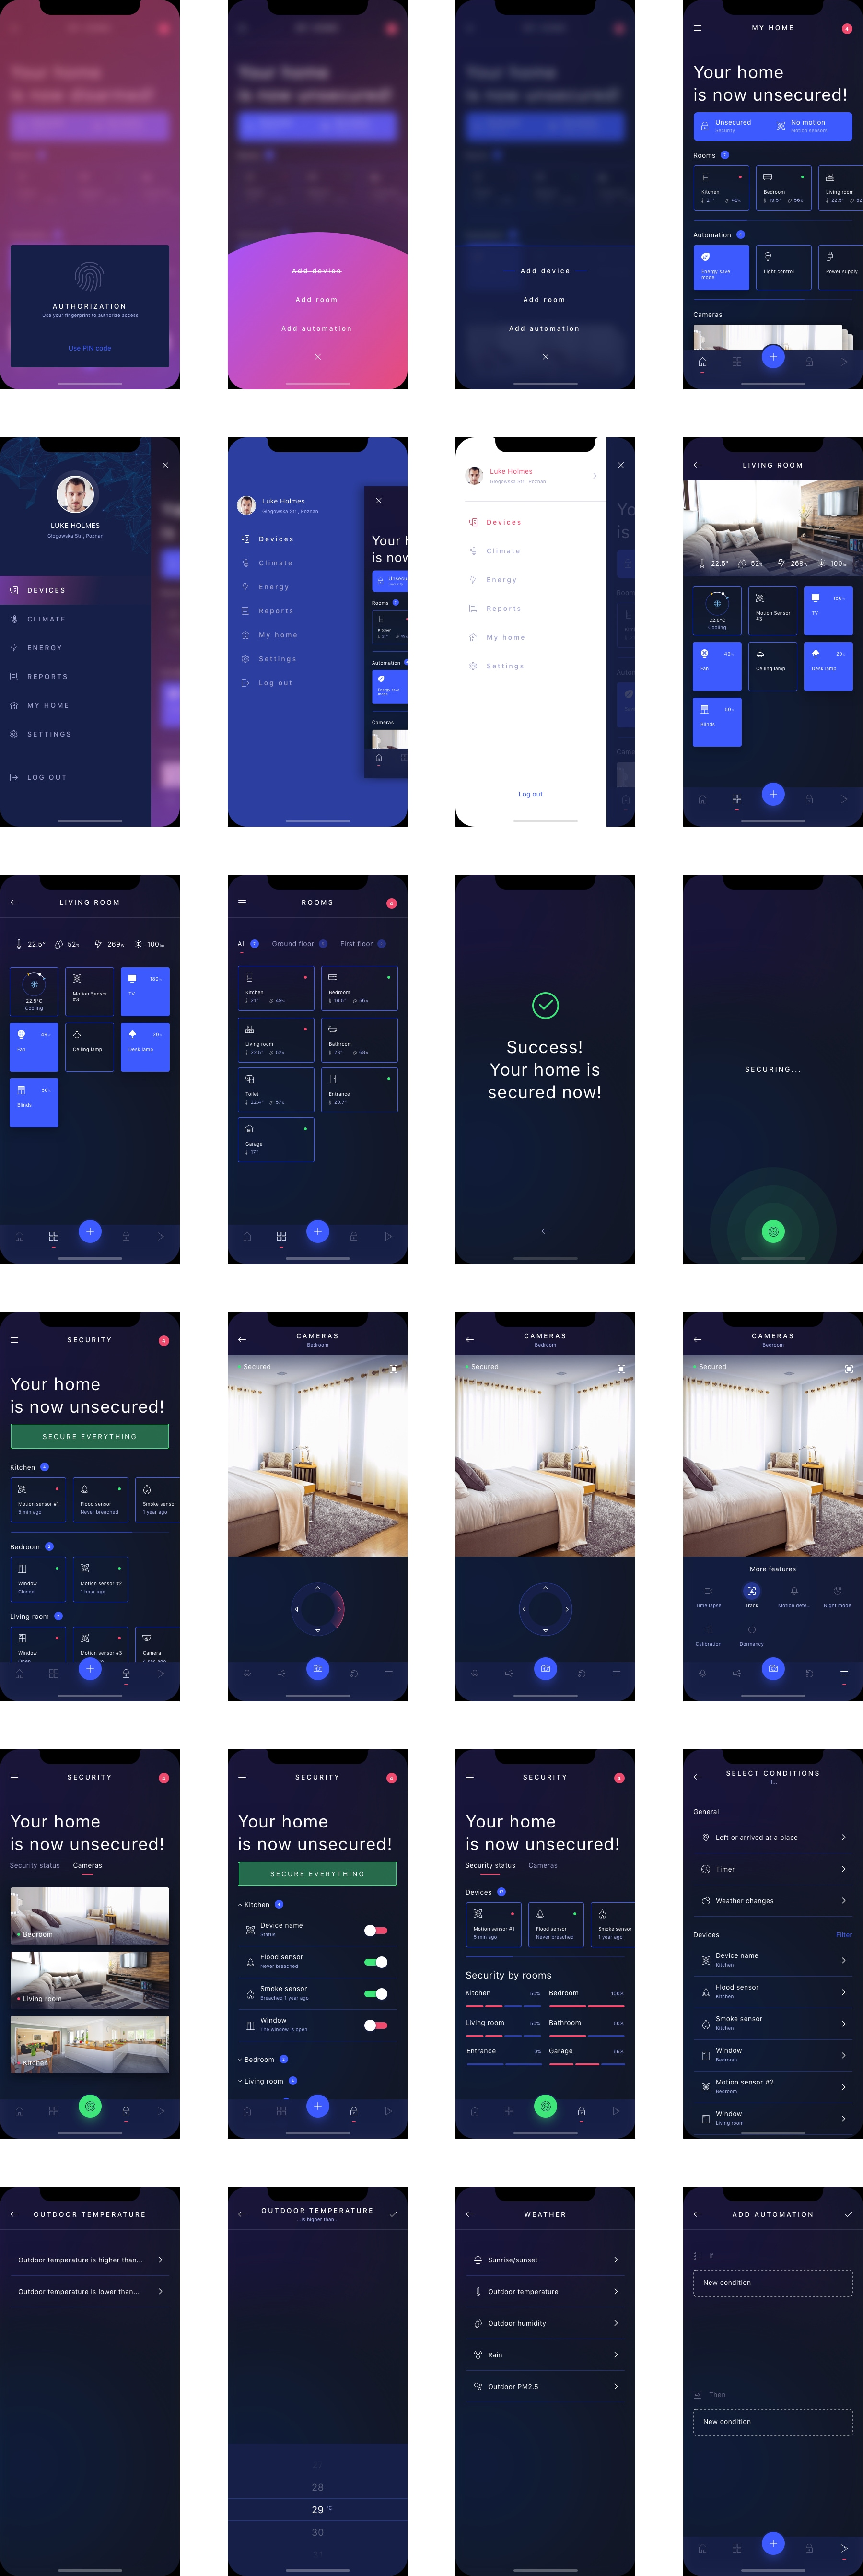 HIVO Smart Home UI Kit - 62 carefully designed mobile screens to kickstart your project.